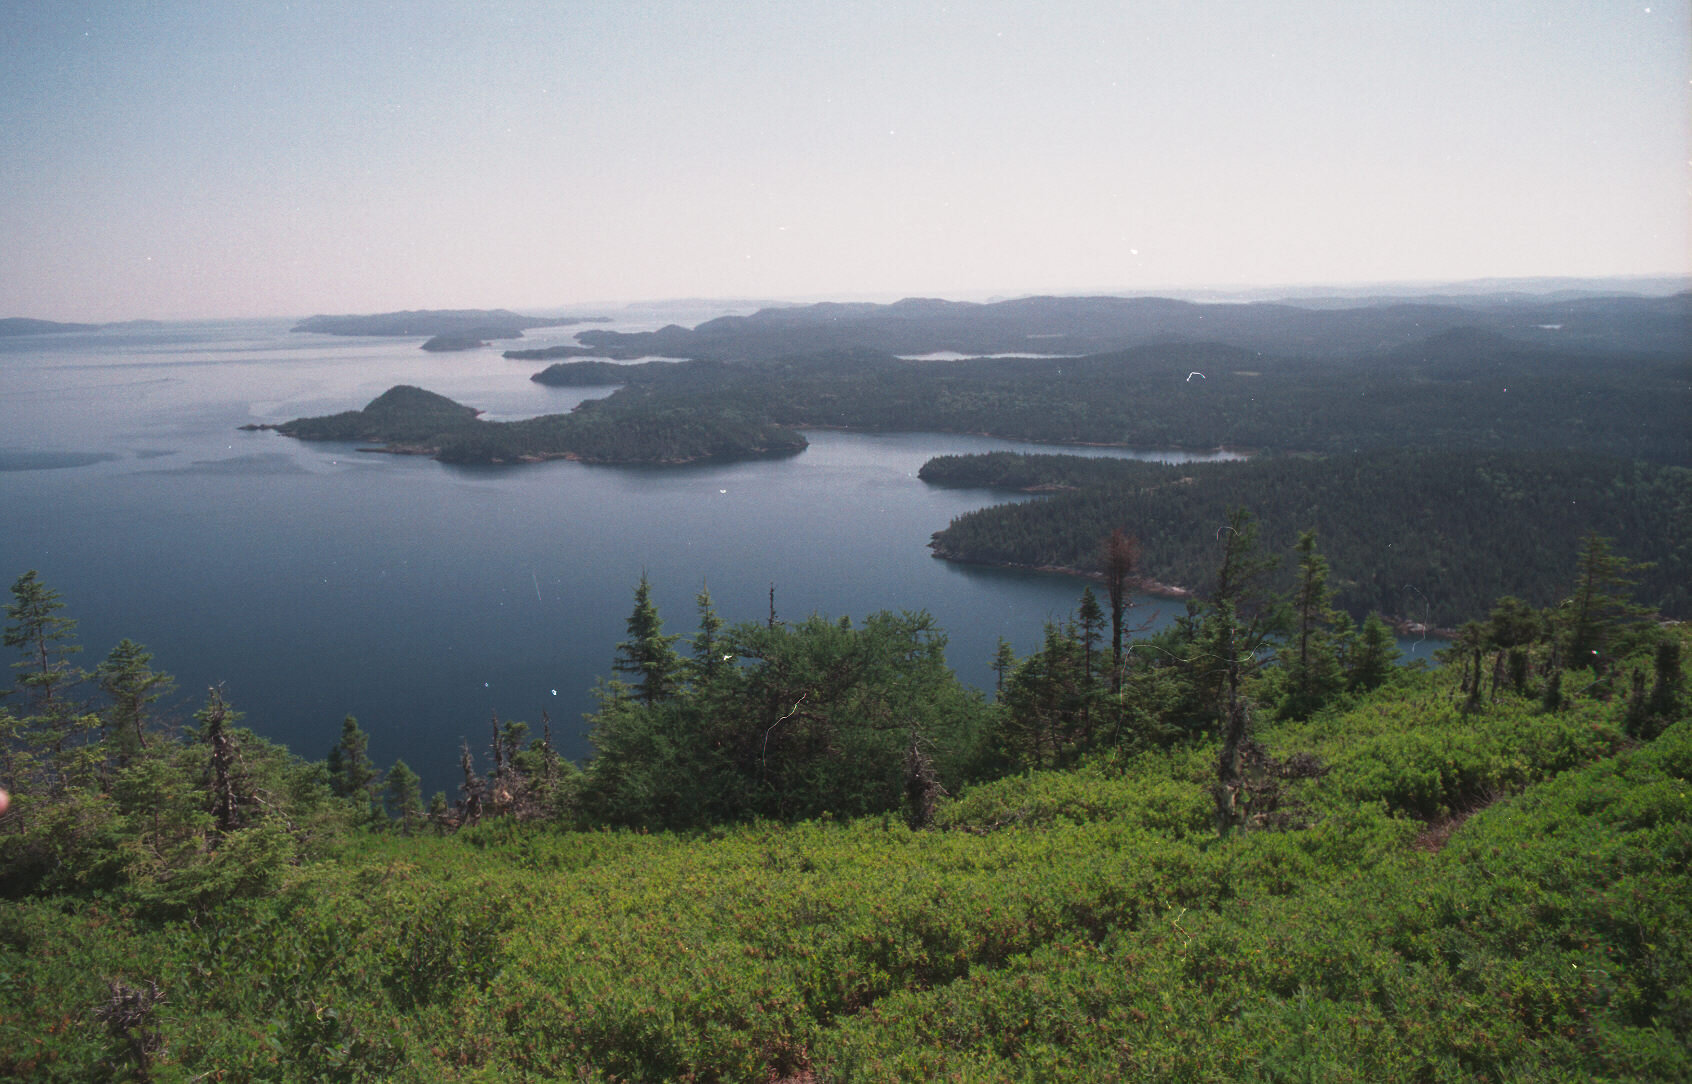 Terra Nova National Park, Canada's most easterly national park